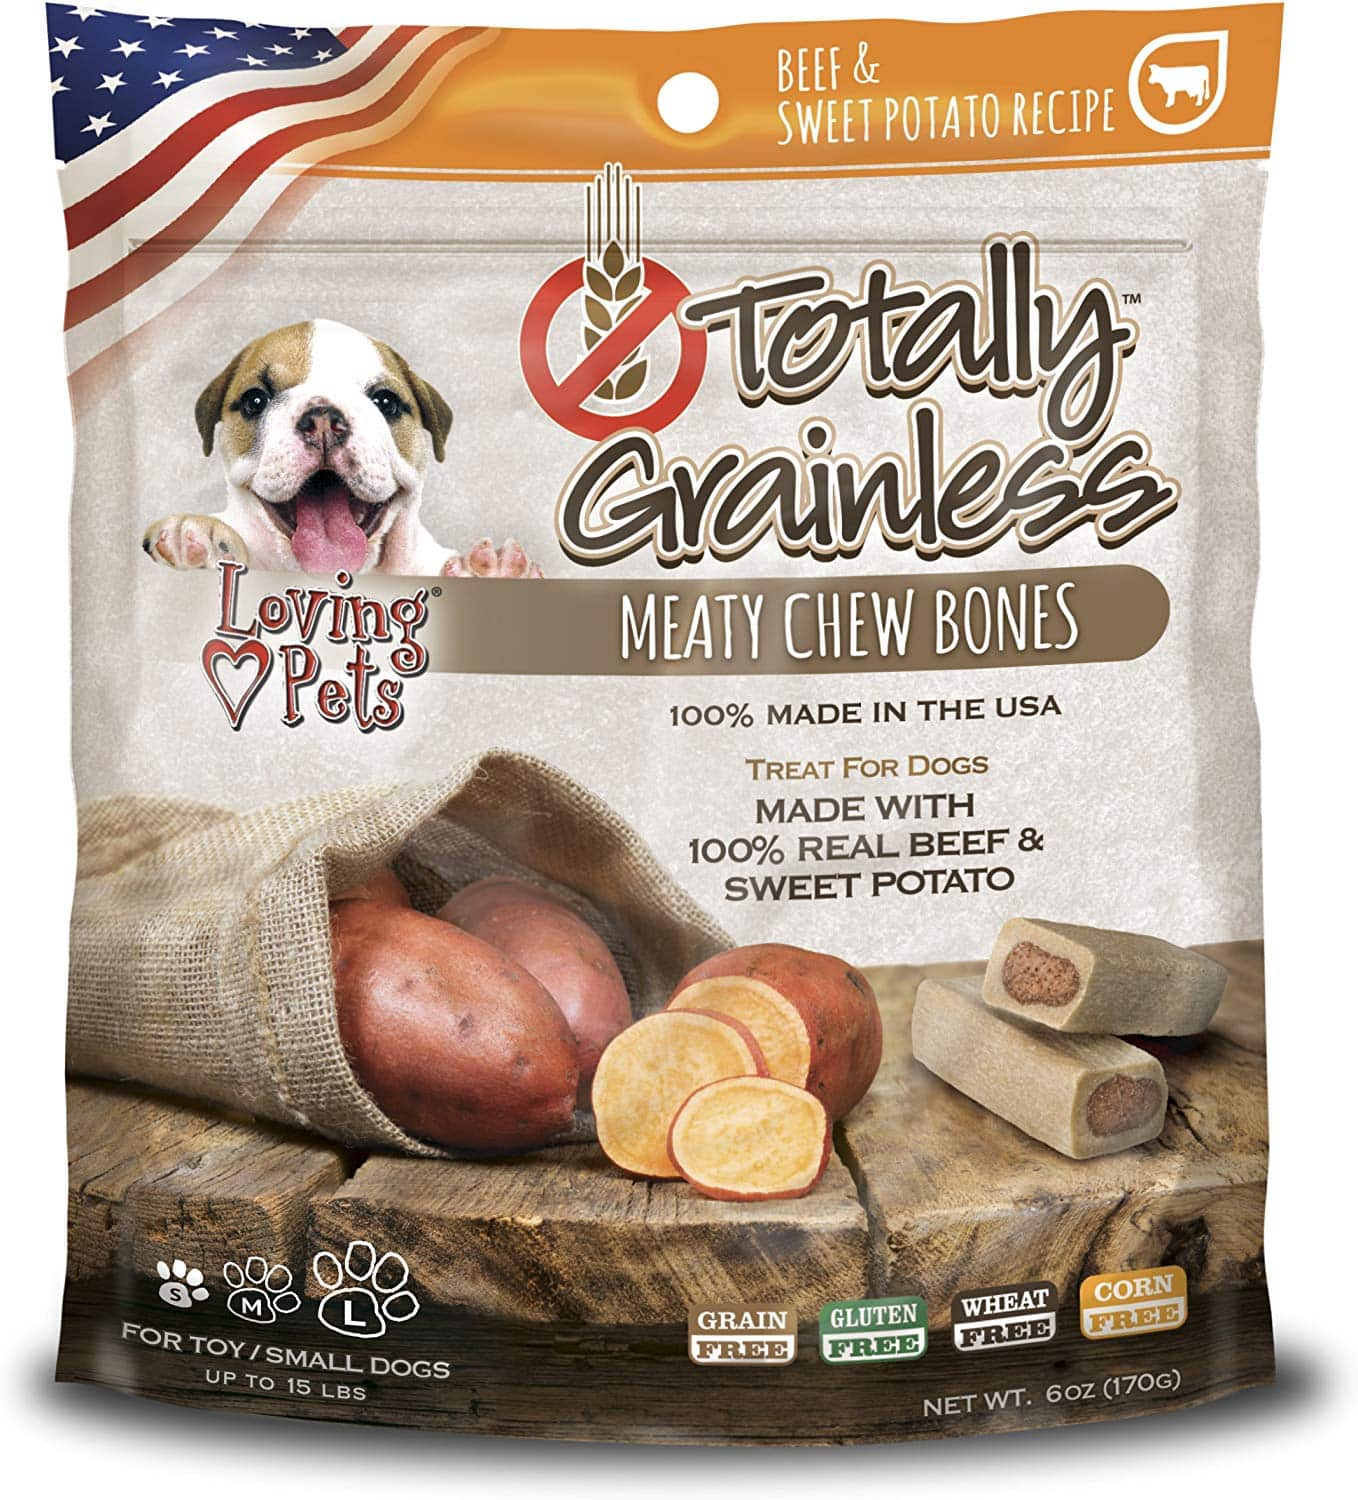 Loving Pets Totally Grainless for Dogs, 6 oz - $1.77 at Amazon + free shipping with prime